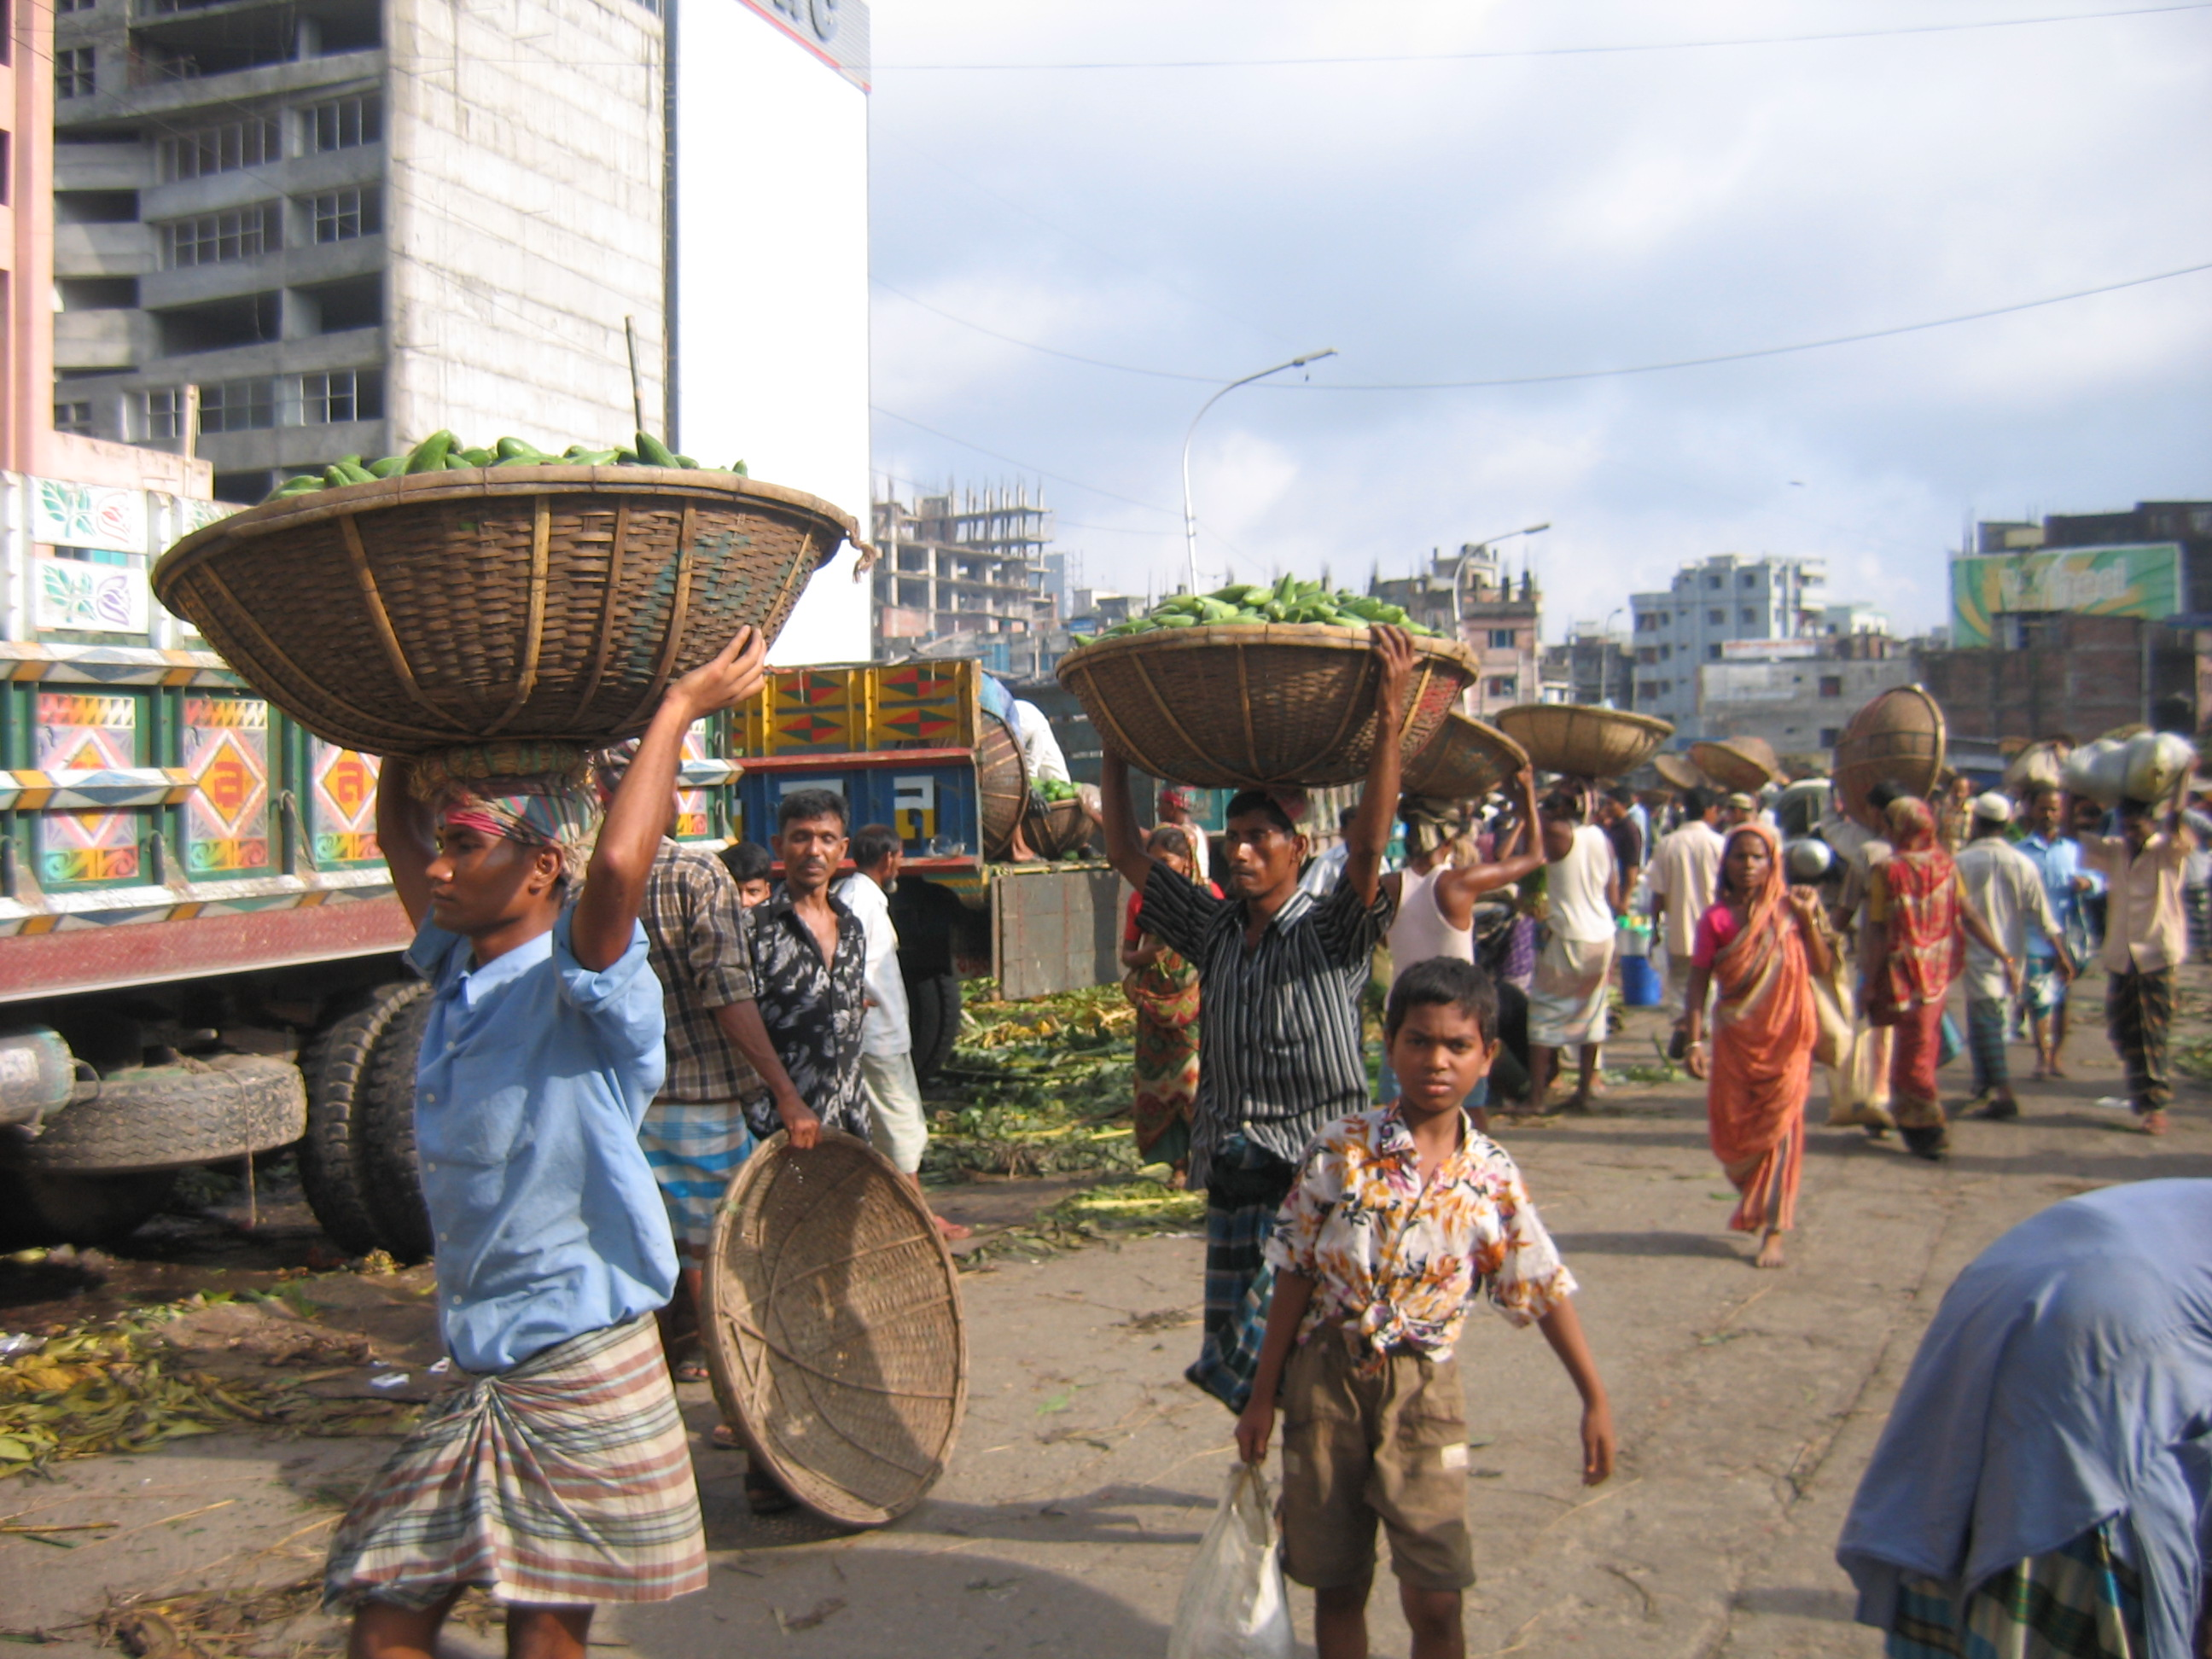 Locals carrying their goods in baskets on their head